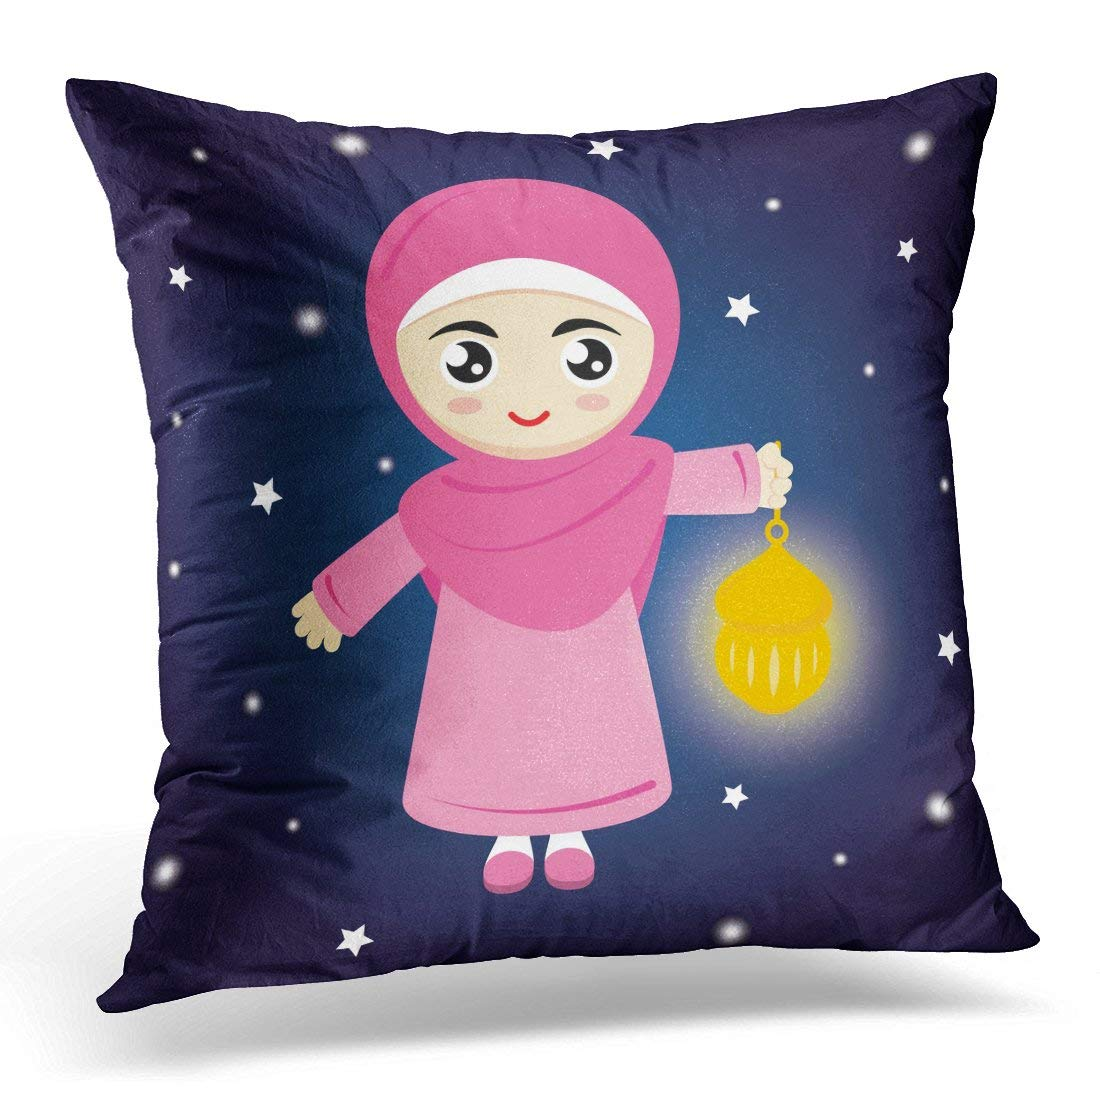 USART Pink Hijab Happy Little Girl Hold Lamp on Blue at Night Kids Pillow Case Pillow Cover 20x20 inch